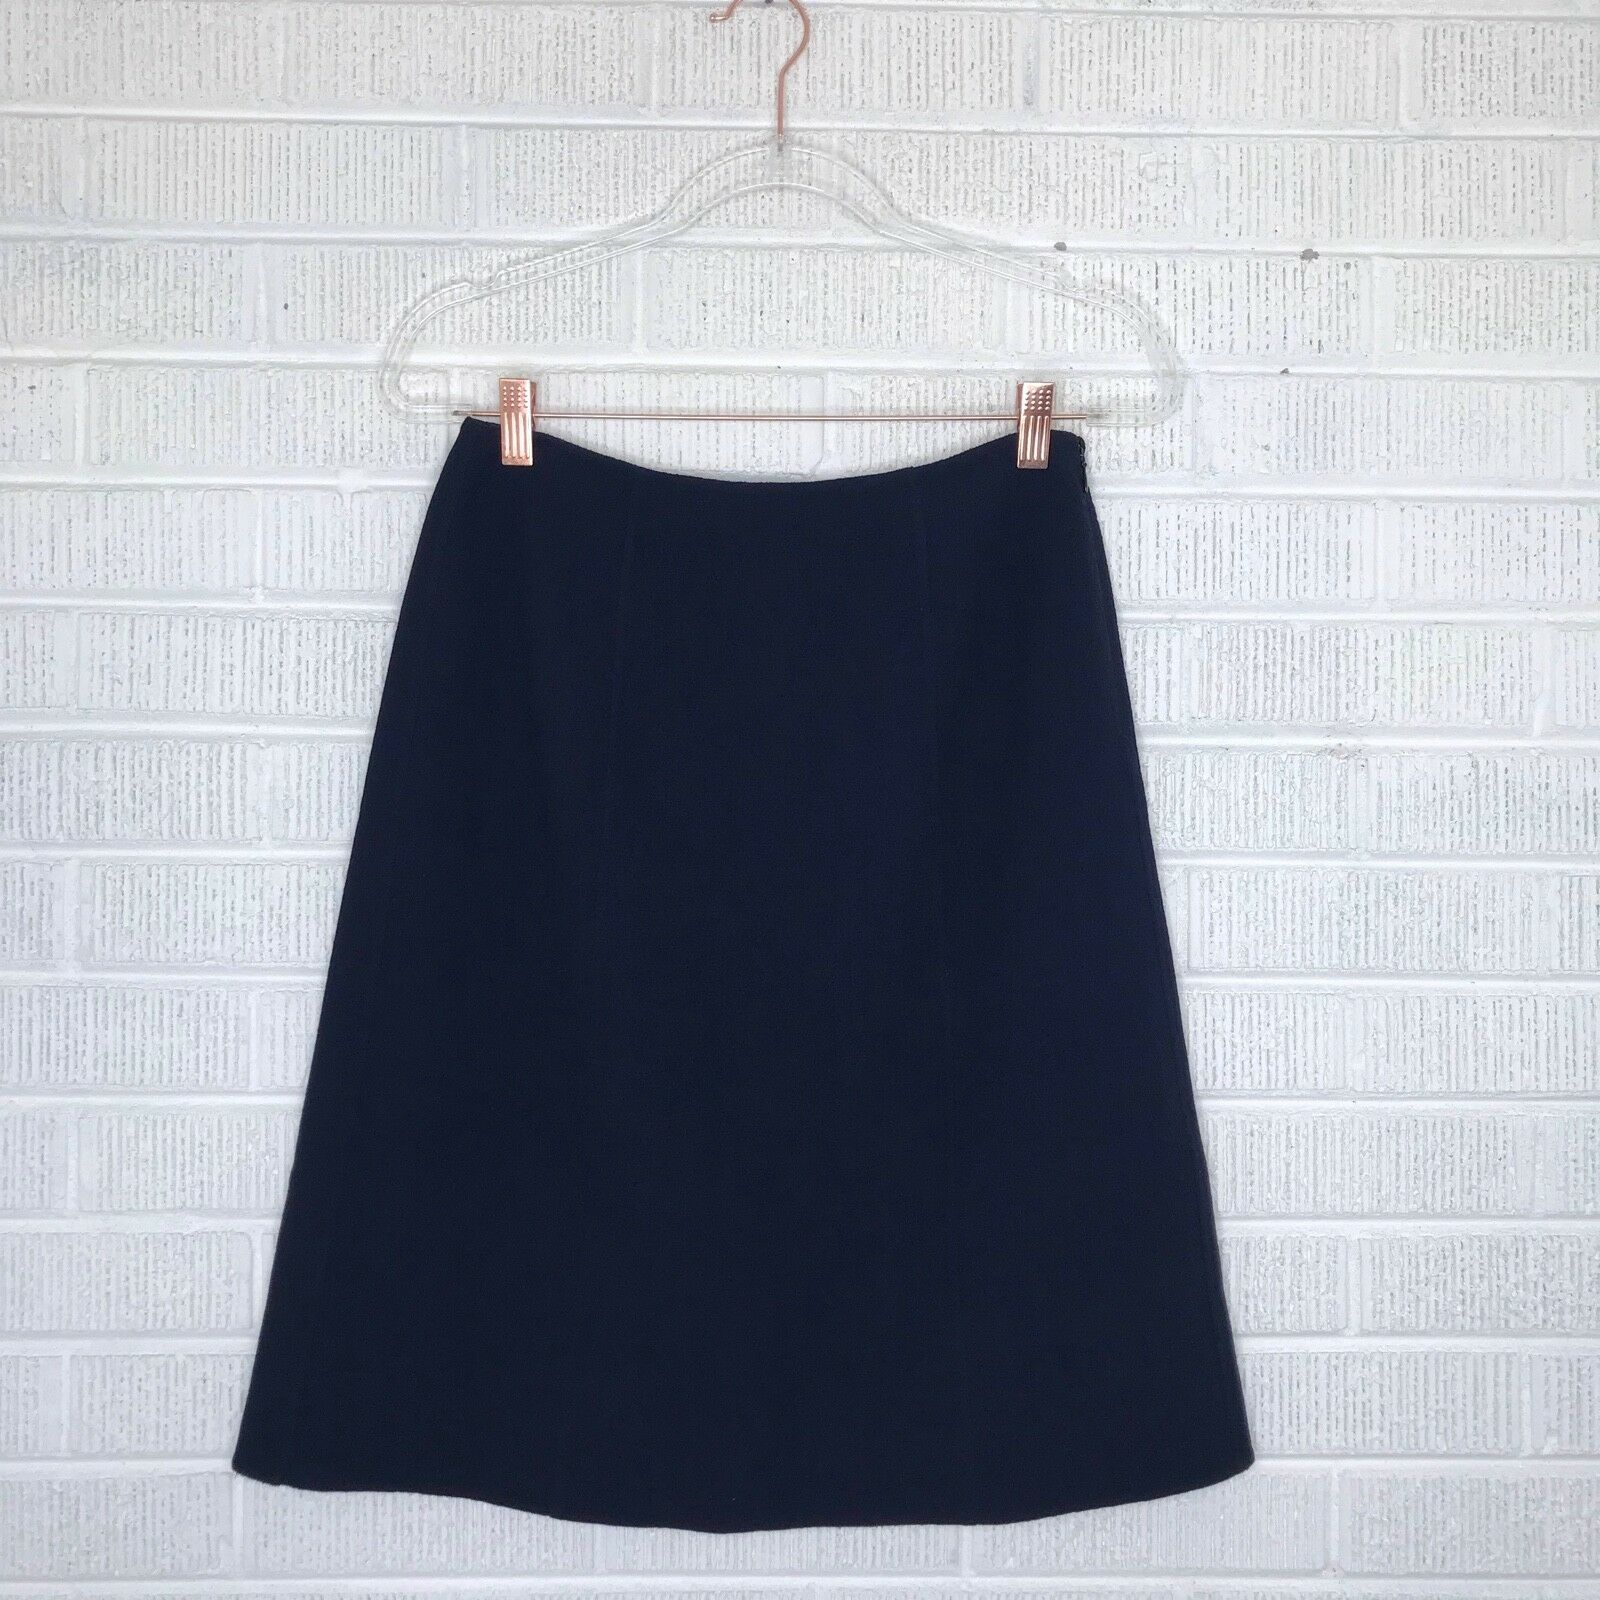 New Diane von Furstenberg Size 10 Panel Marta Skirt Navy bluee Textured Career